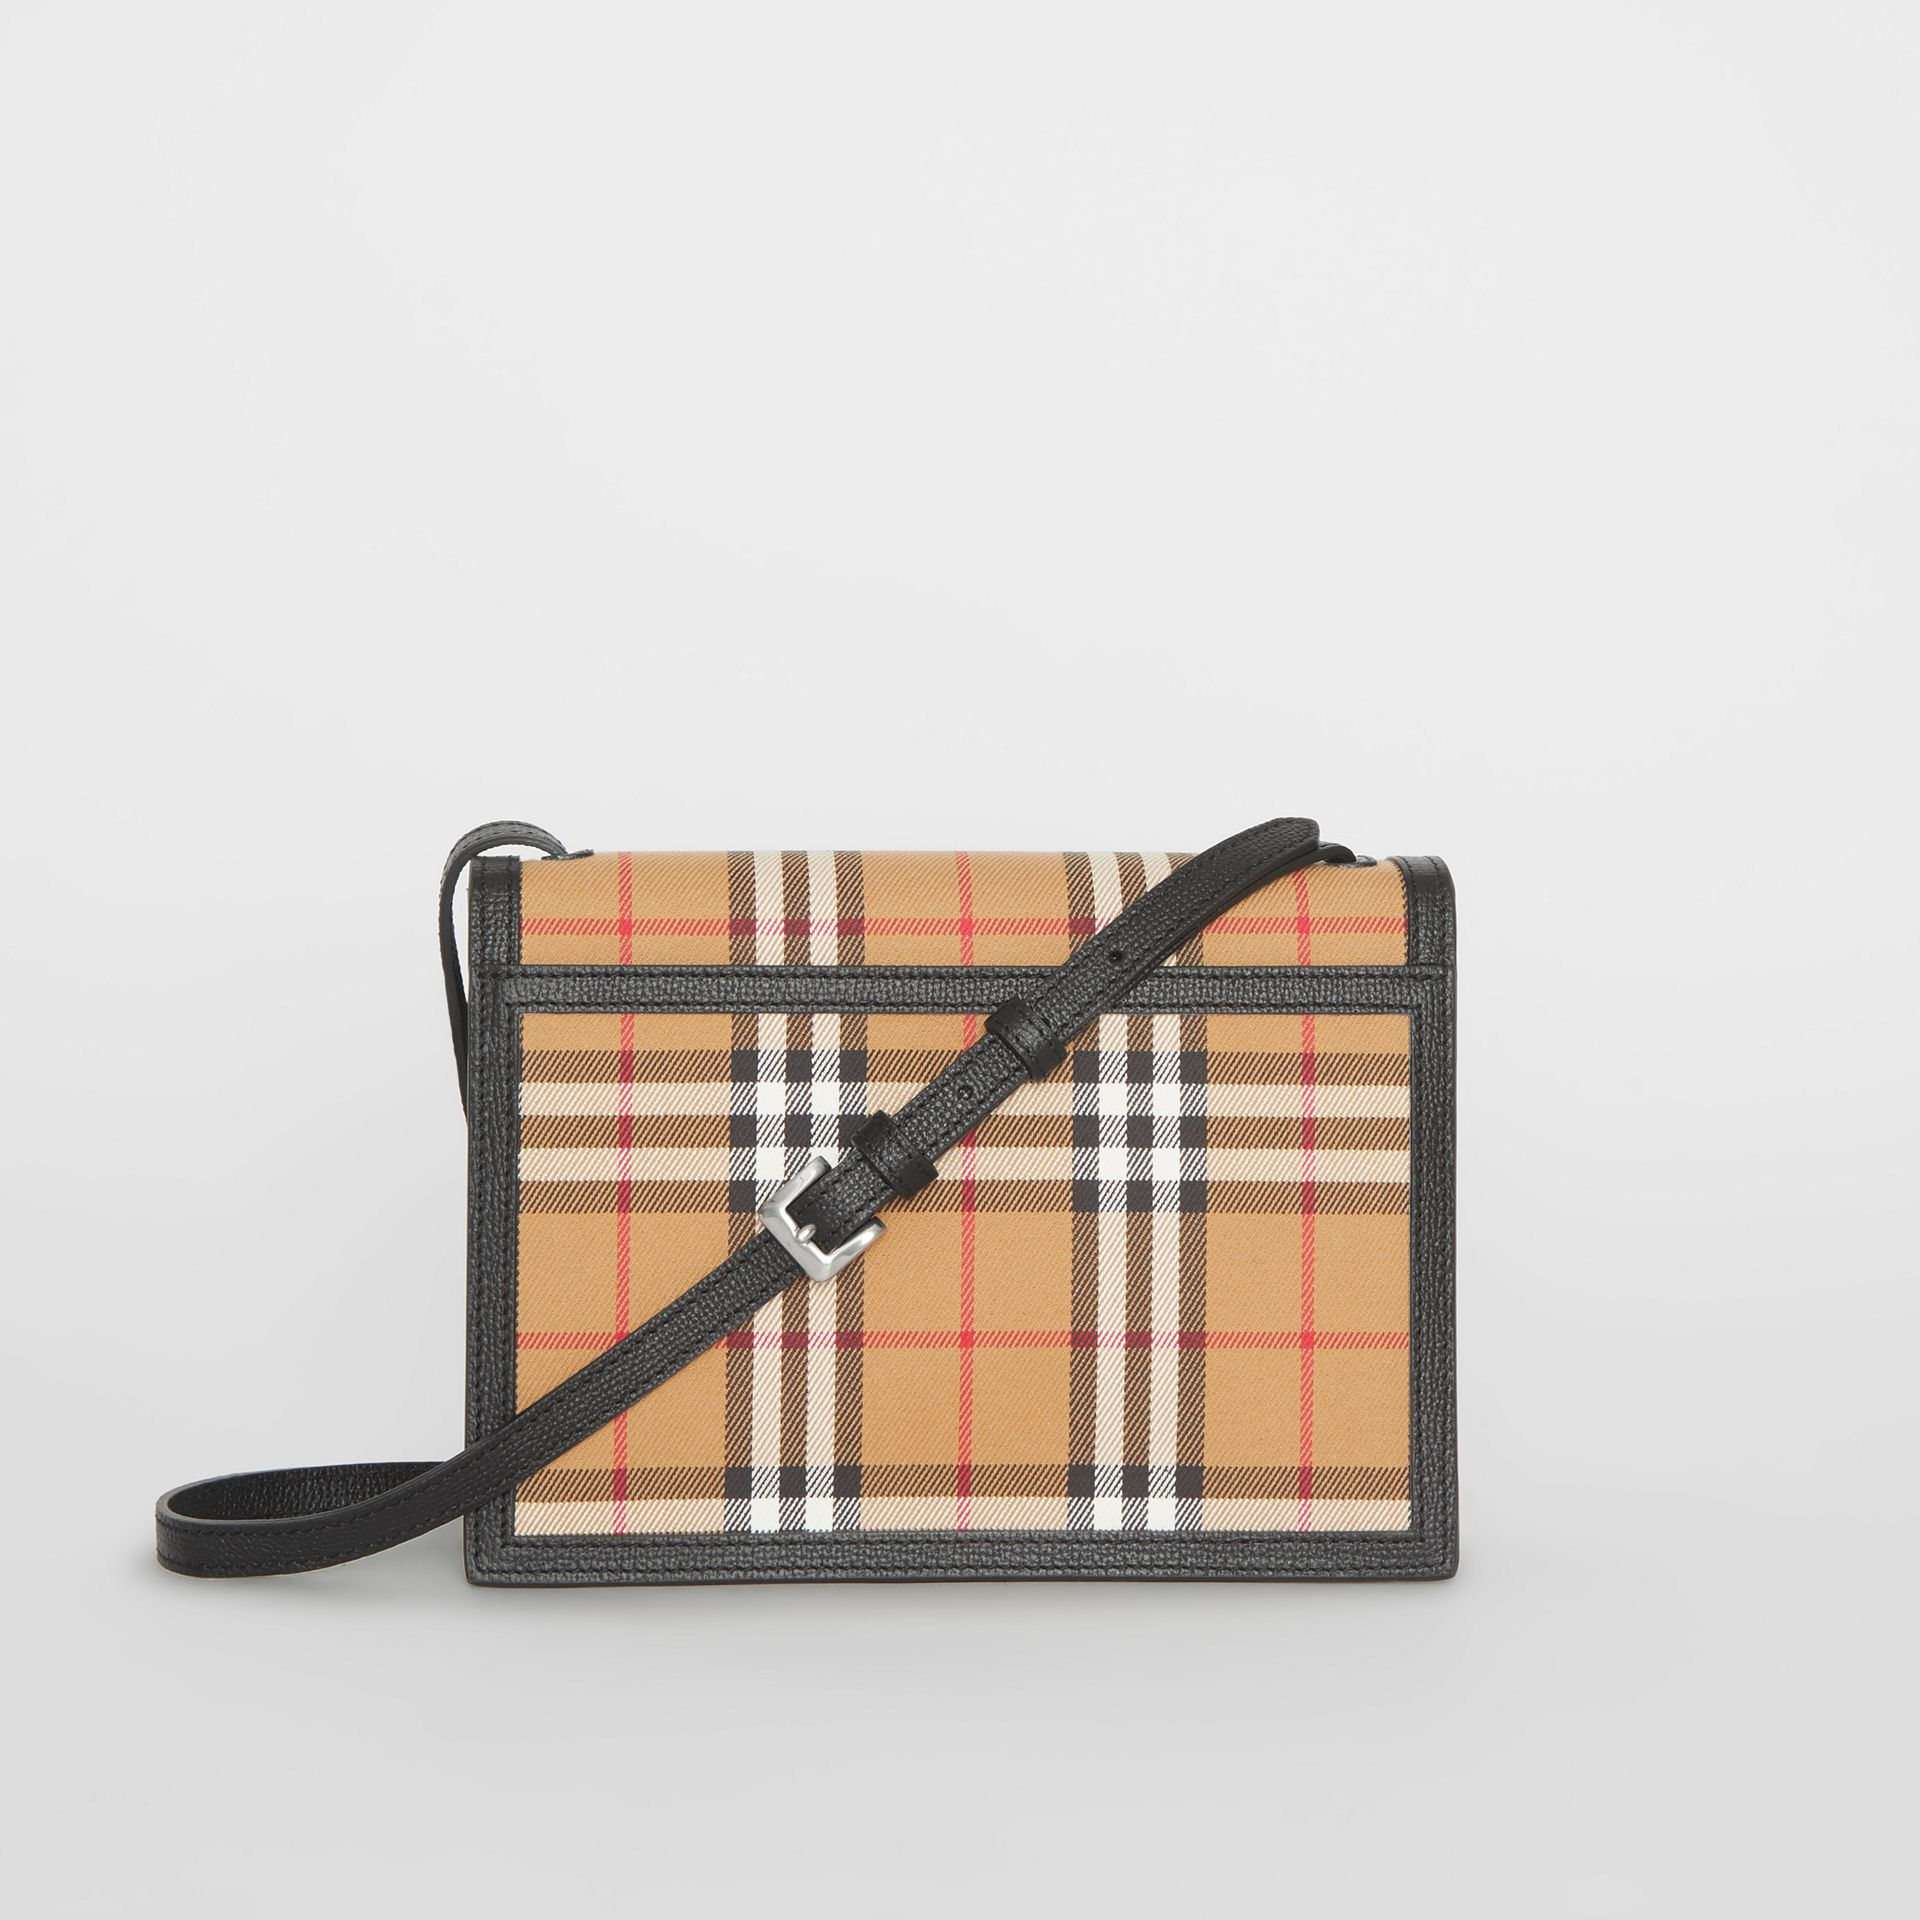 Small Vintage Check and Leather Crossbody Bag in Black - Women | Burberry Hong Kong - gallery image 7